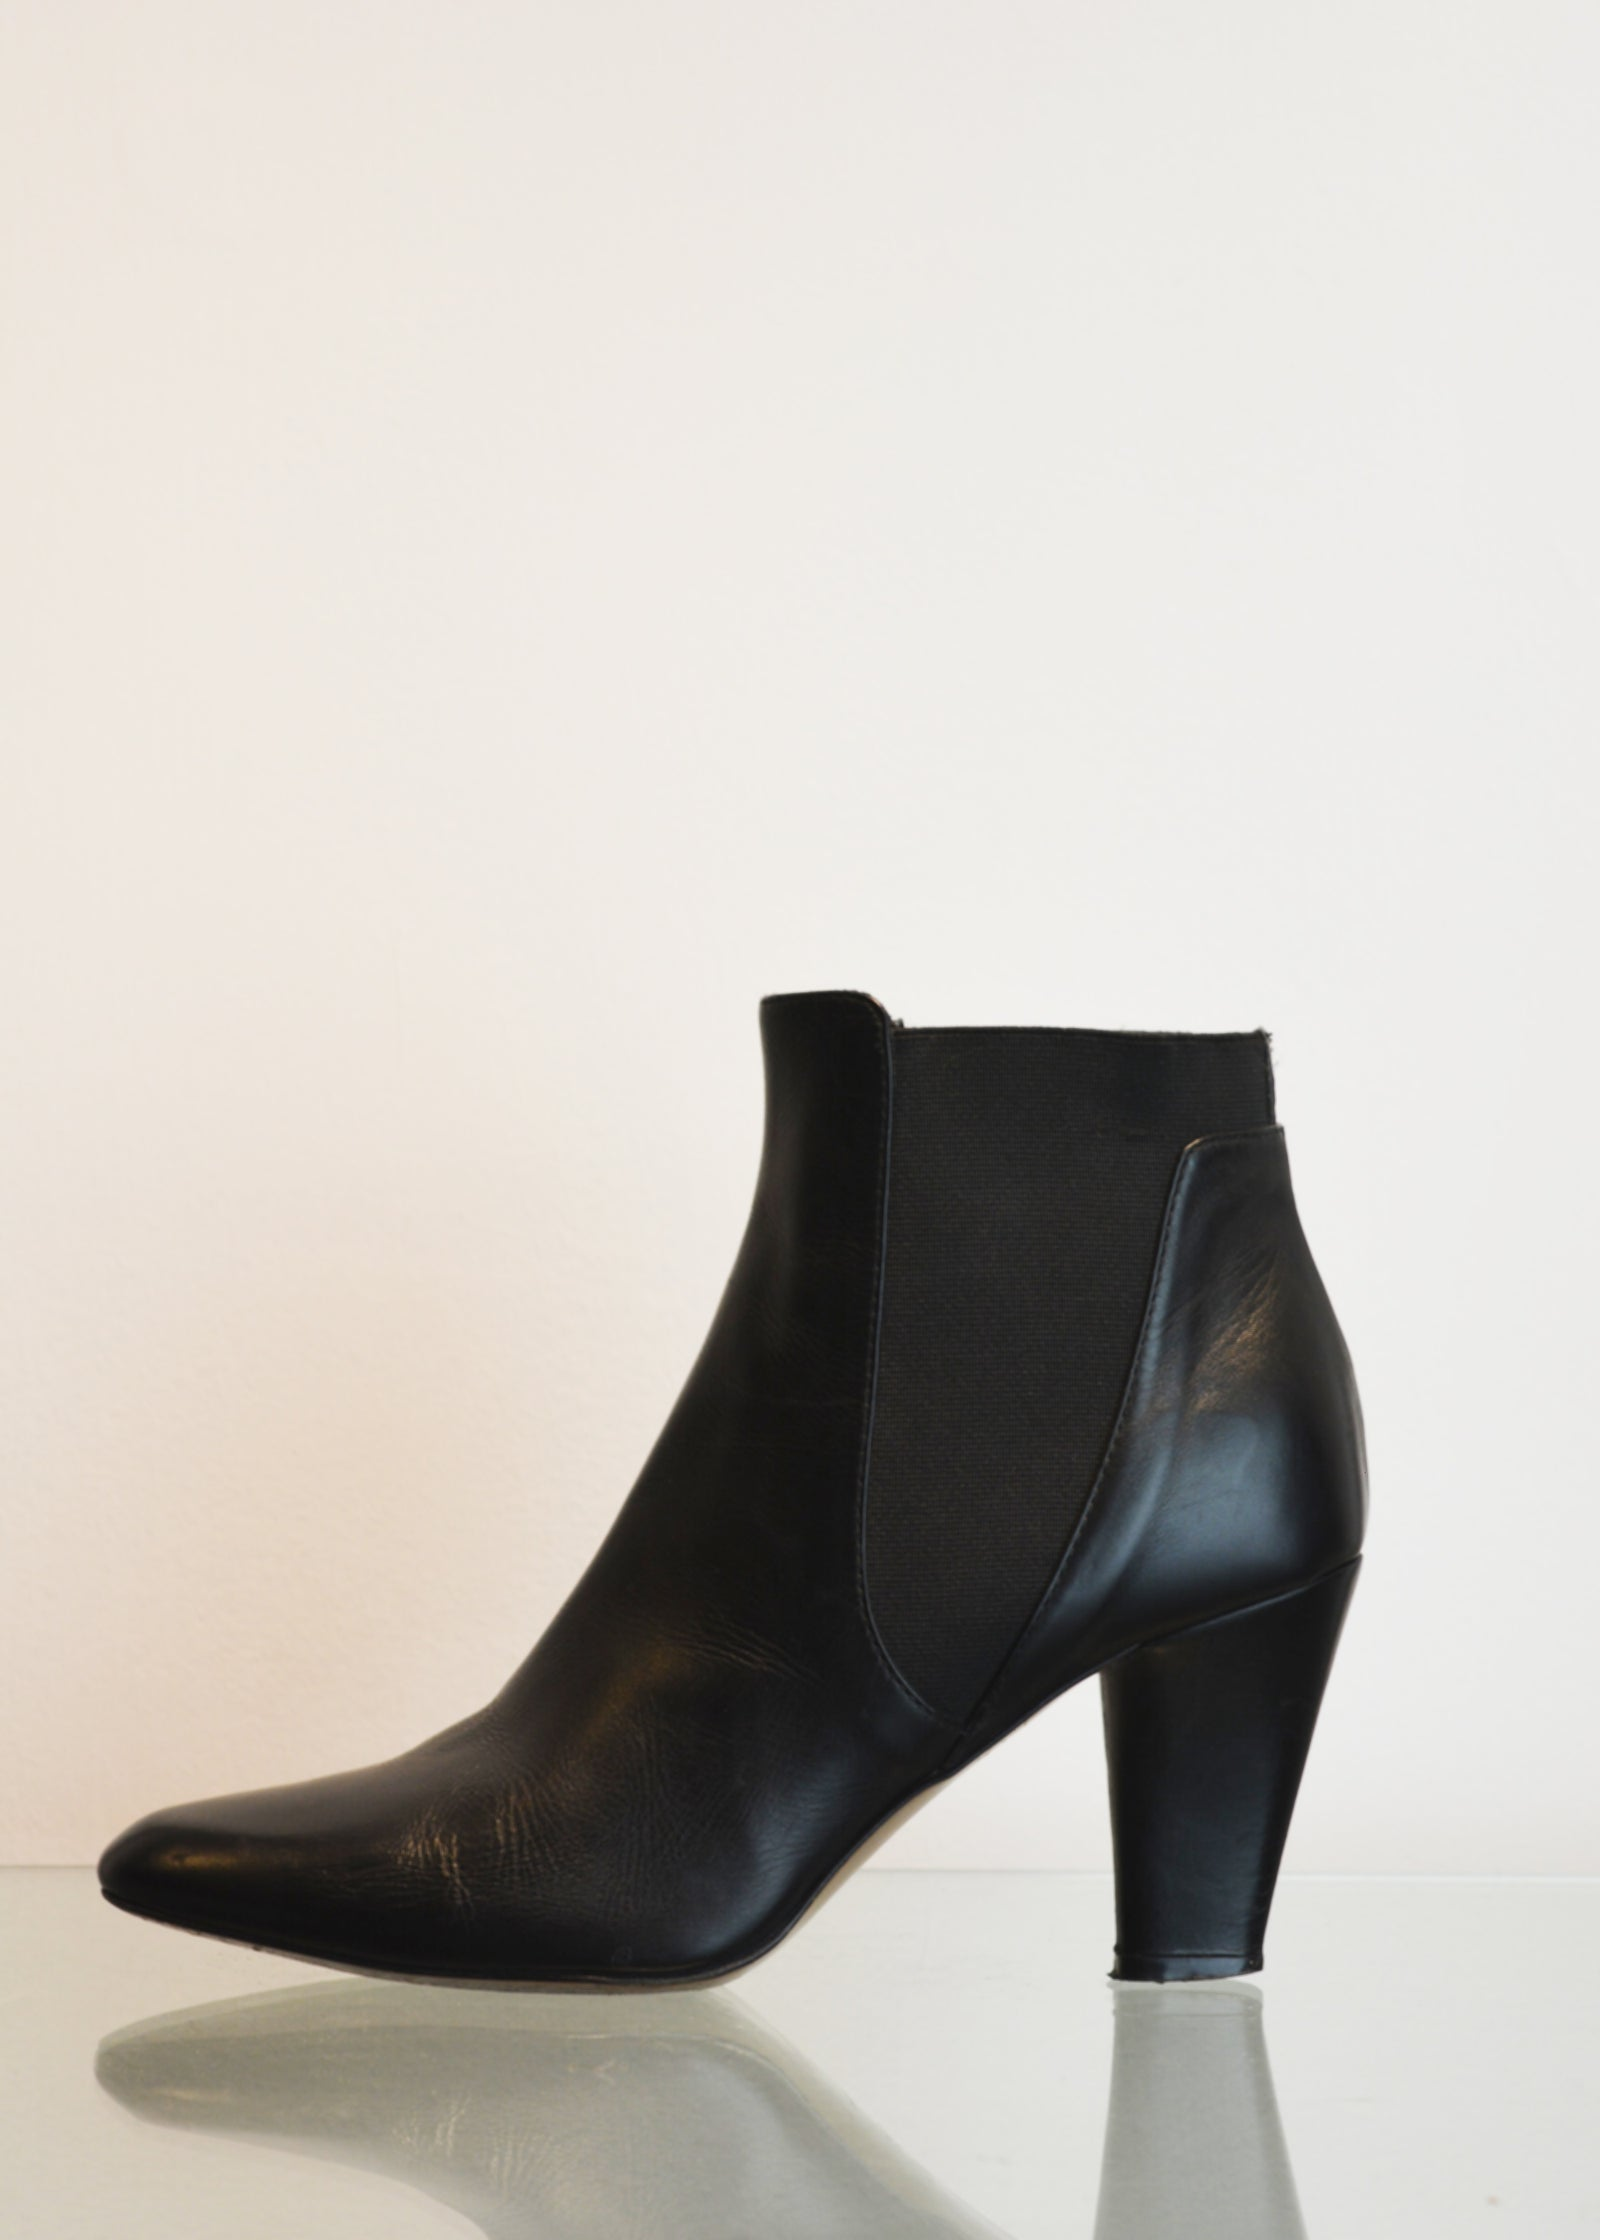 PREWORN | Preloved - 'HOBBS' Ankle Boot - Size 6 UK